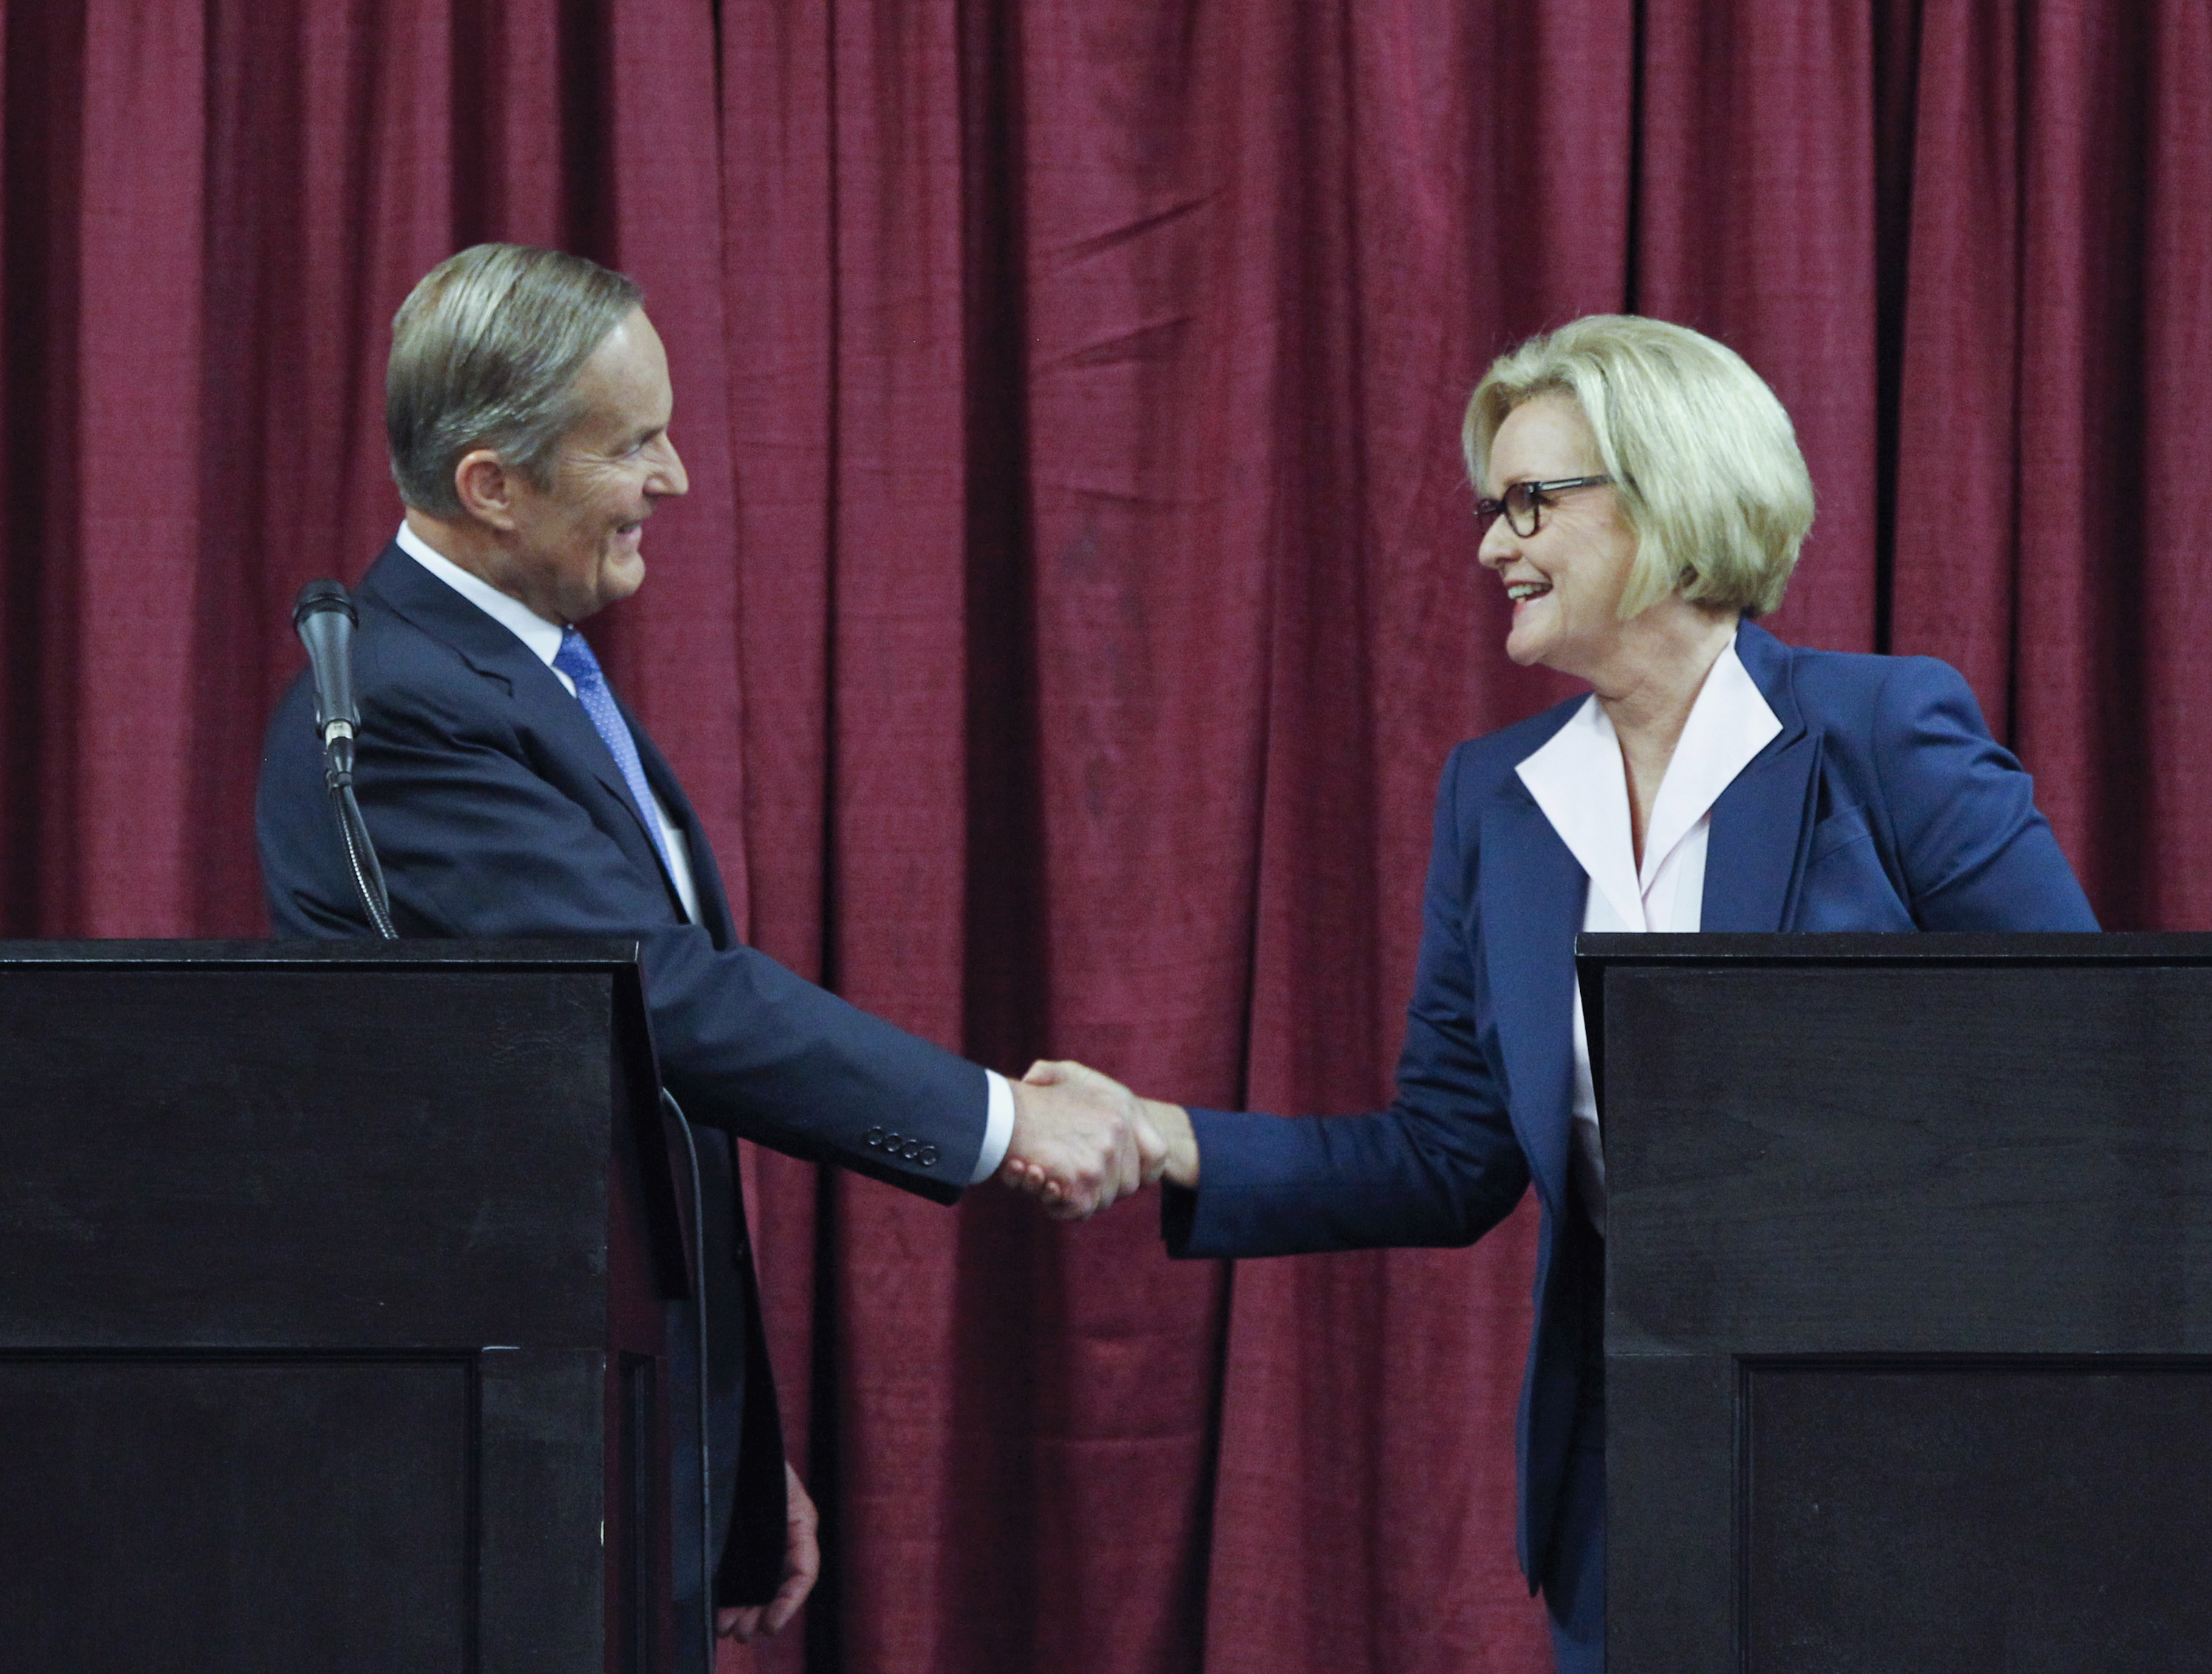 US Senate candidates for Missouri Akin and Senator McCaskill. ©REUTERS